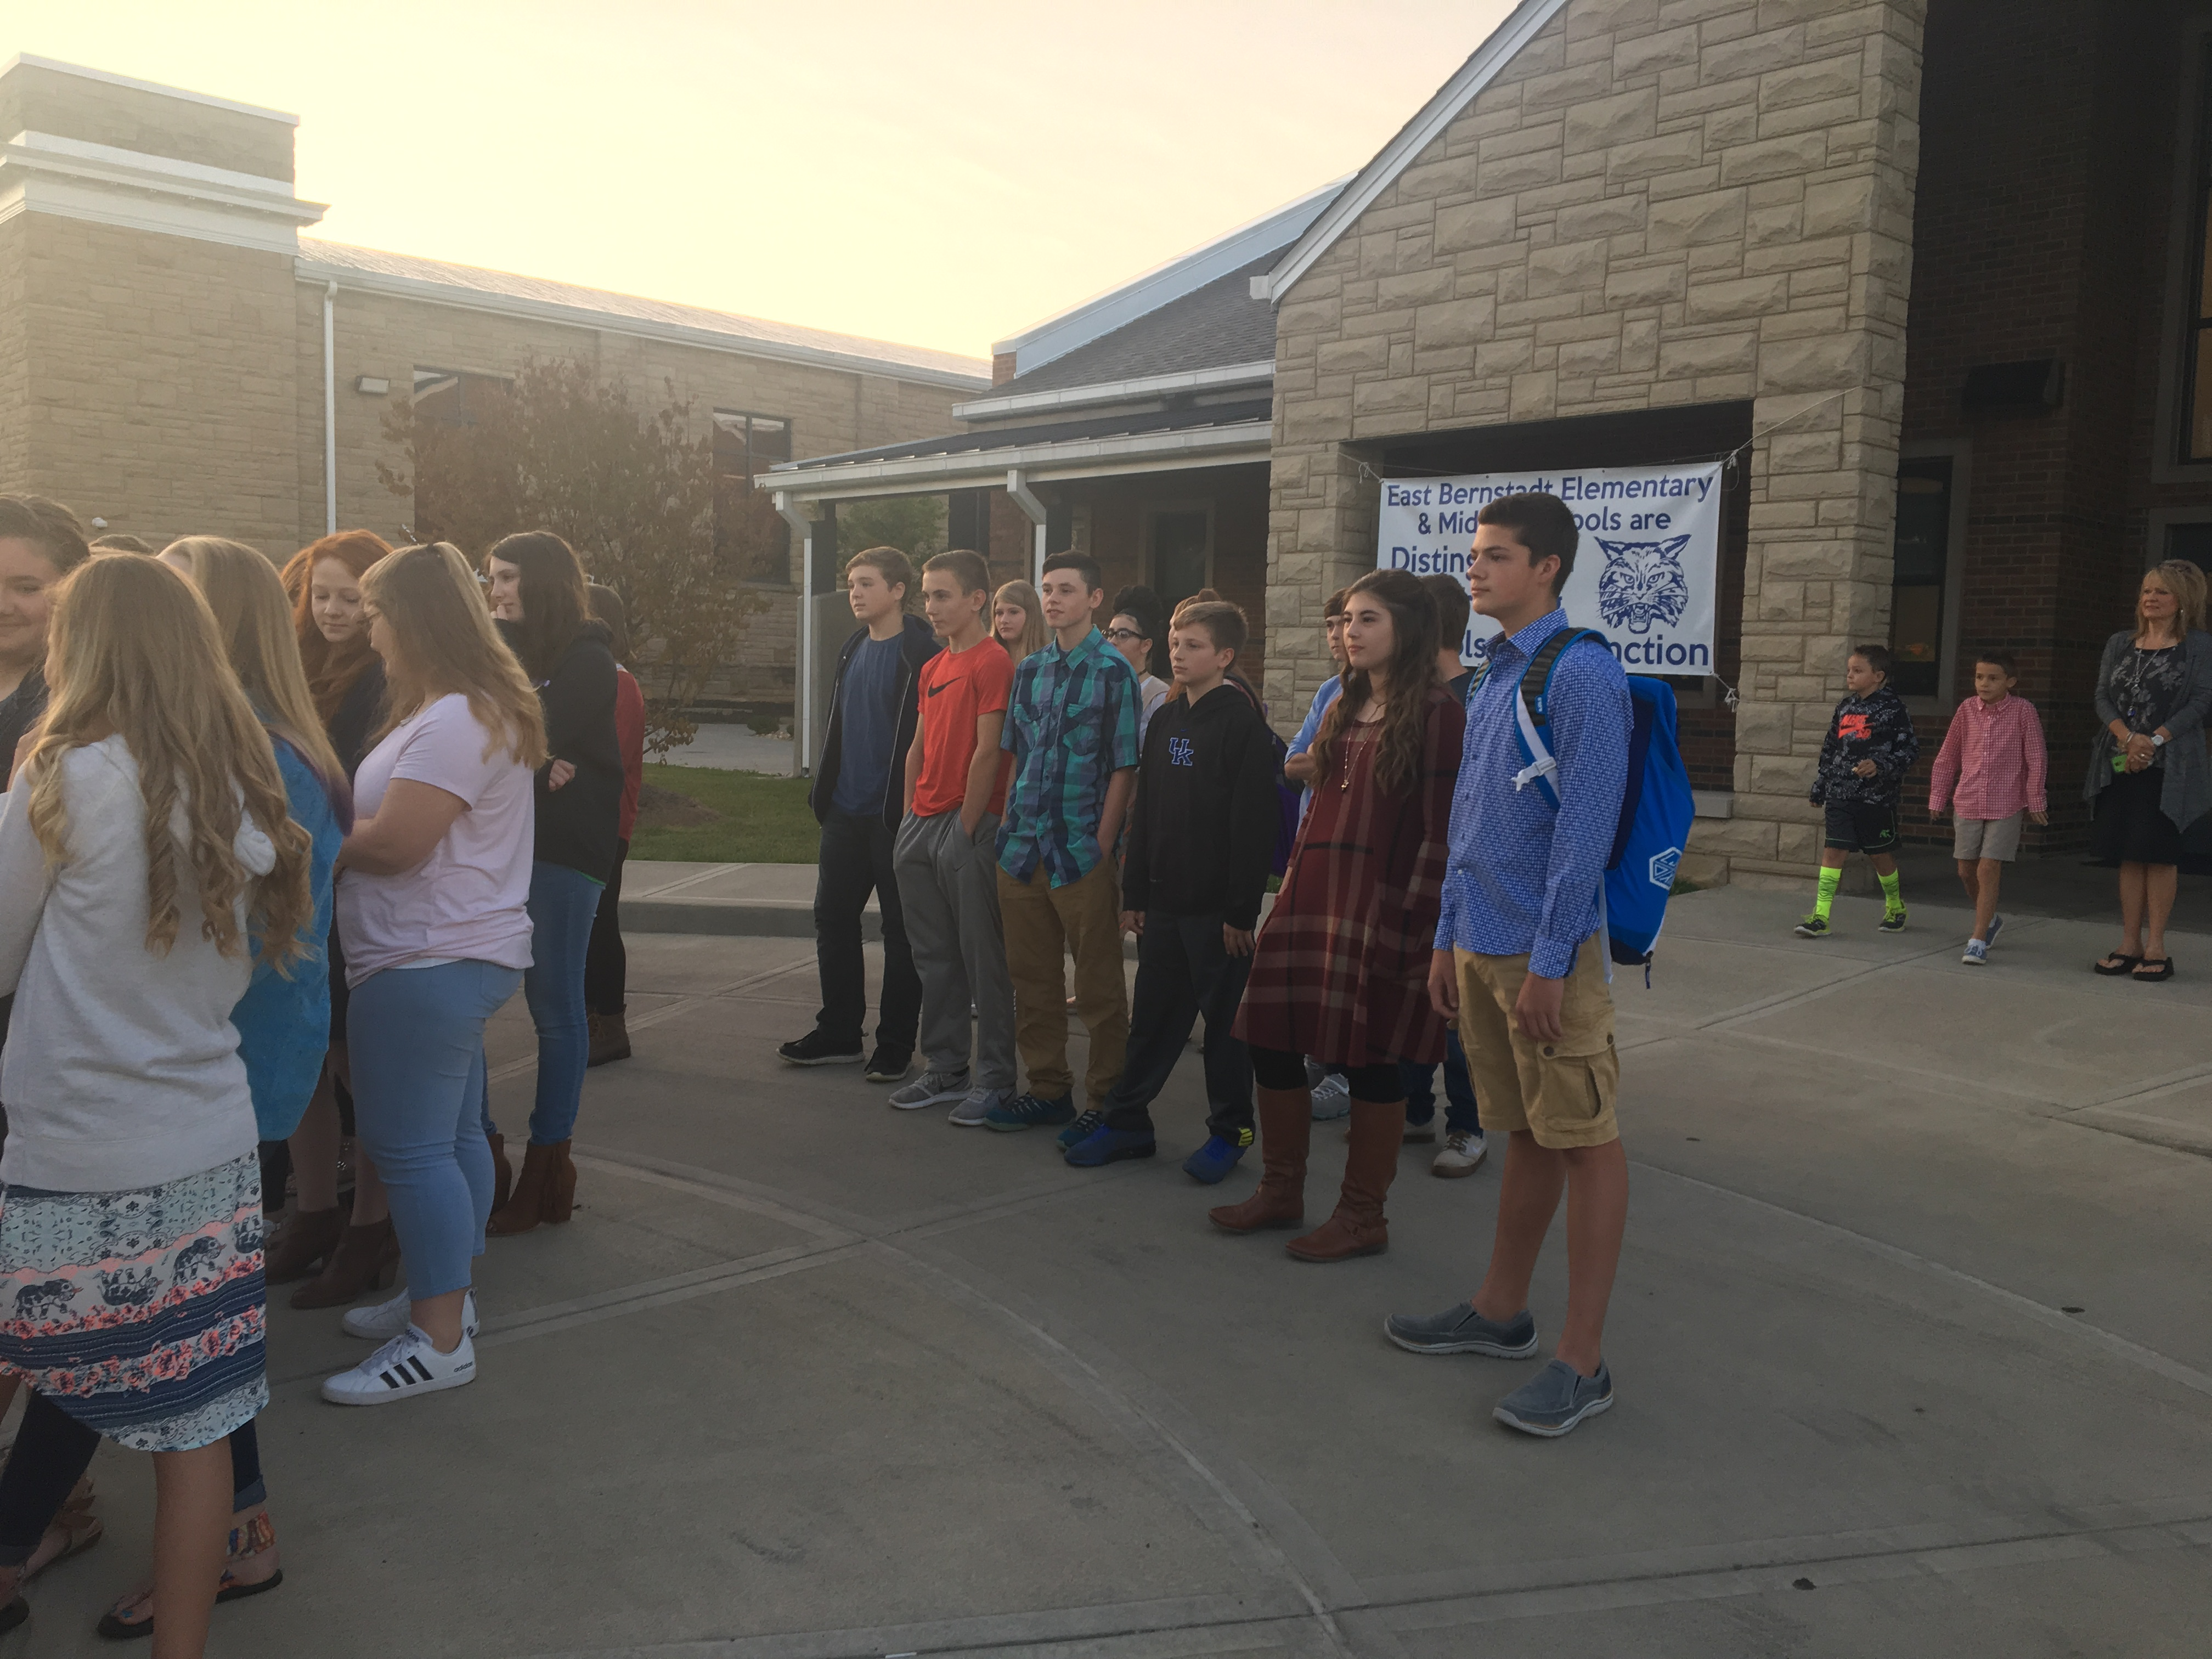 Prayer at the Pole